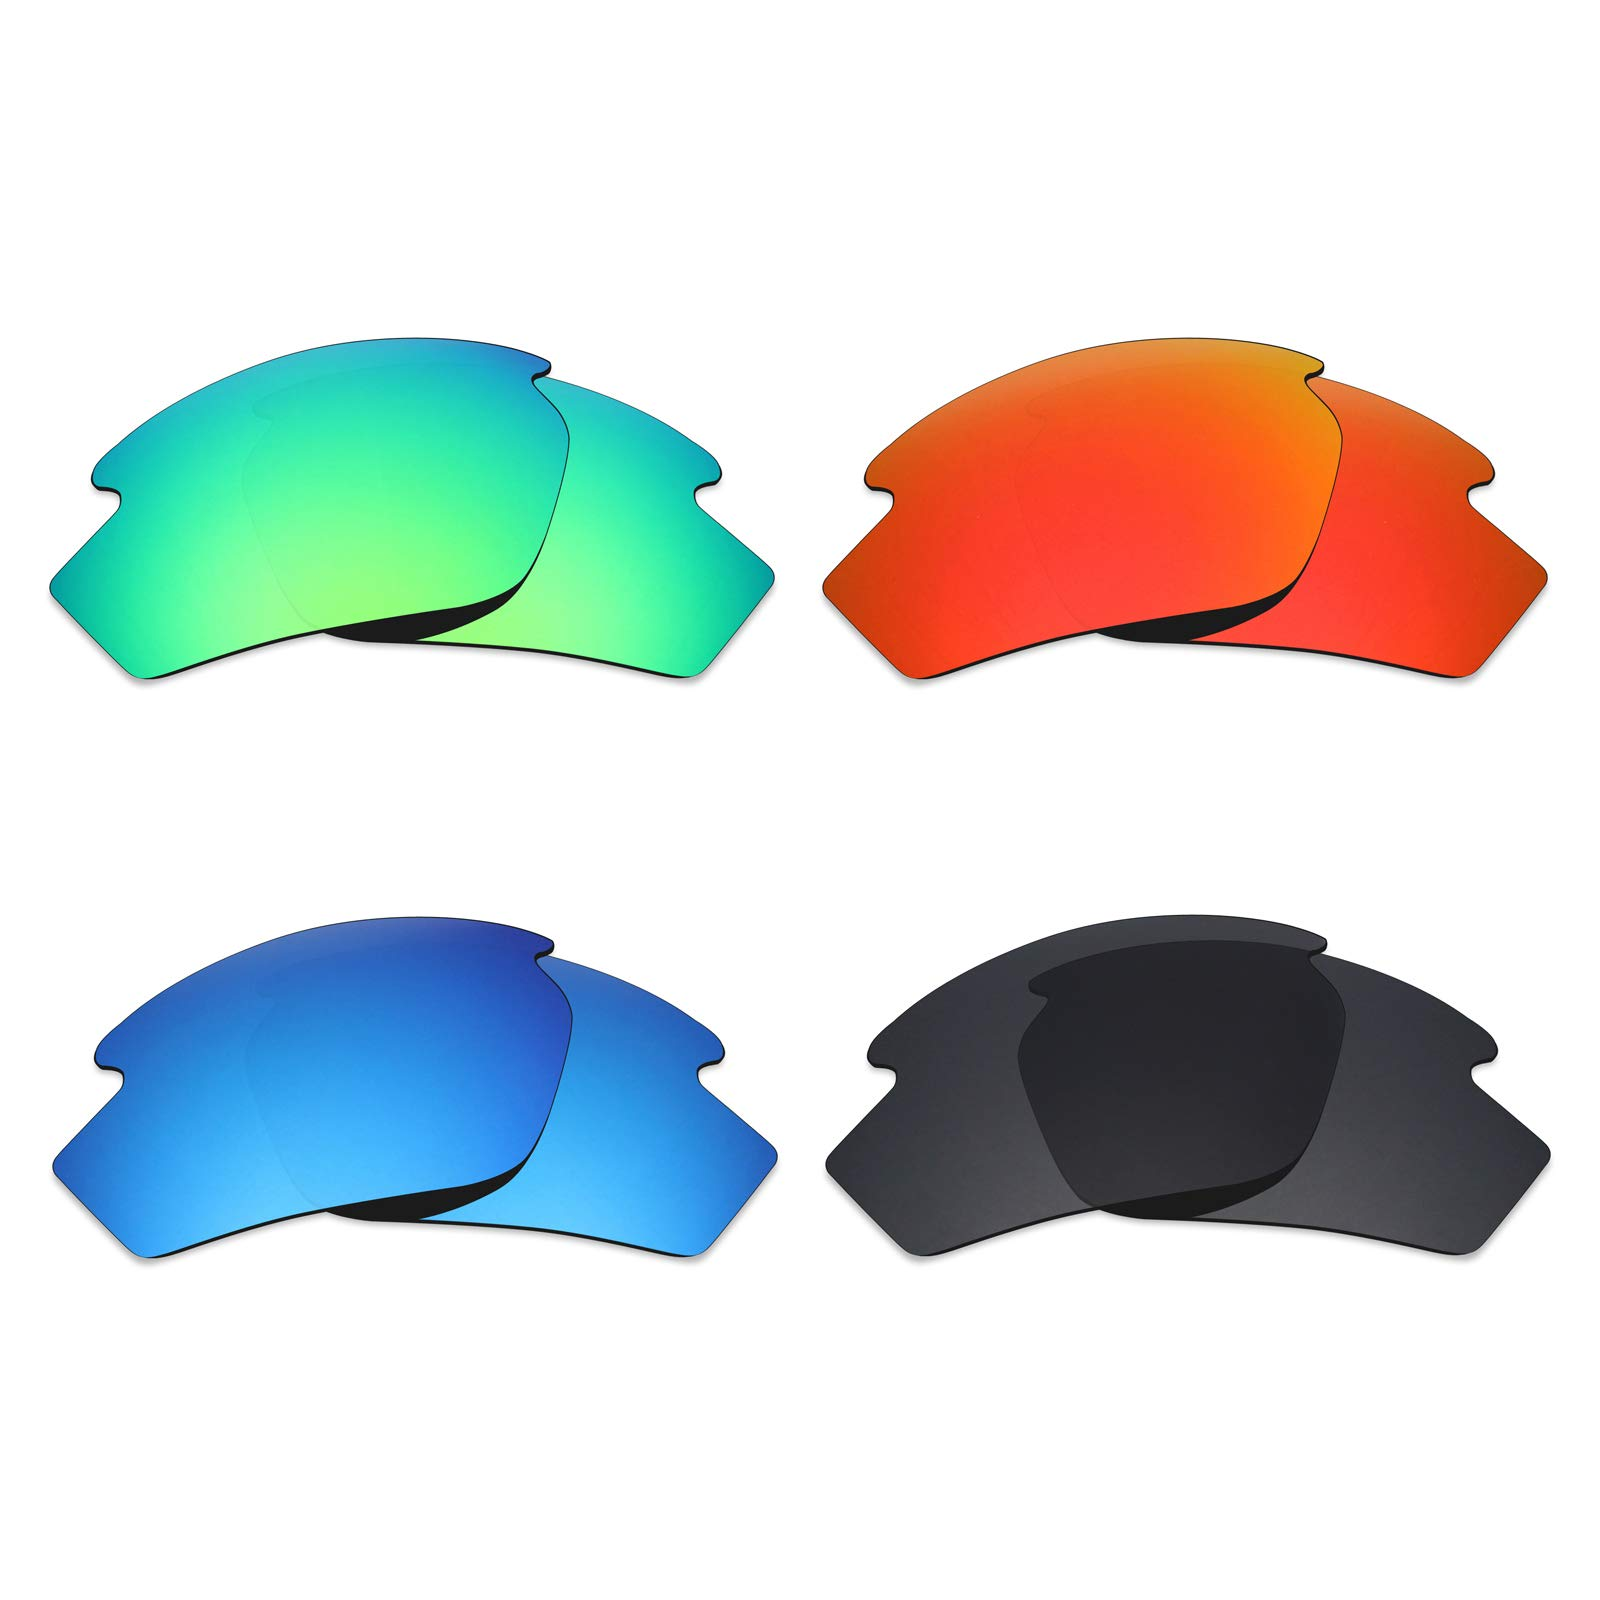 Mryok 4 Pair Polarized Replacement Lenses for Rudy Project Rydon Sunglass - Stealth Black/Fire Red/Ice Blue/Emerald Green